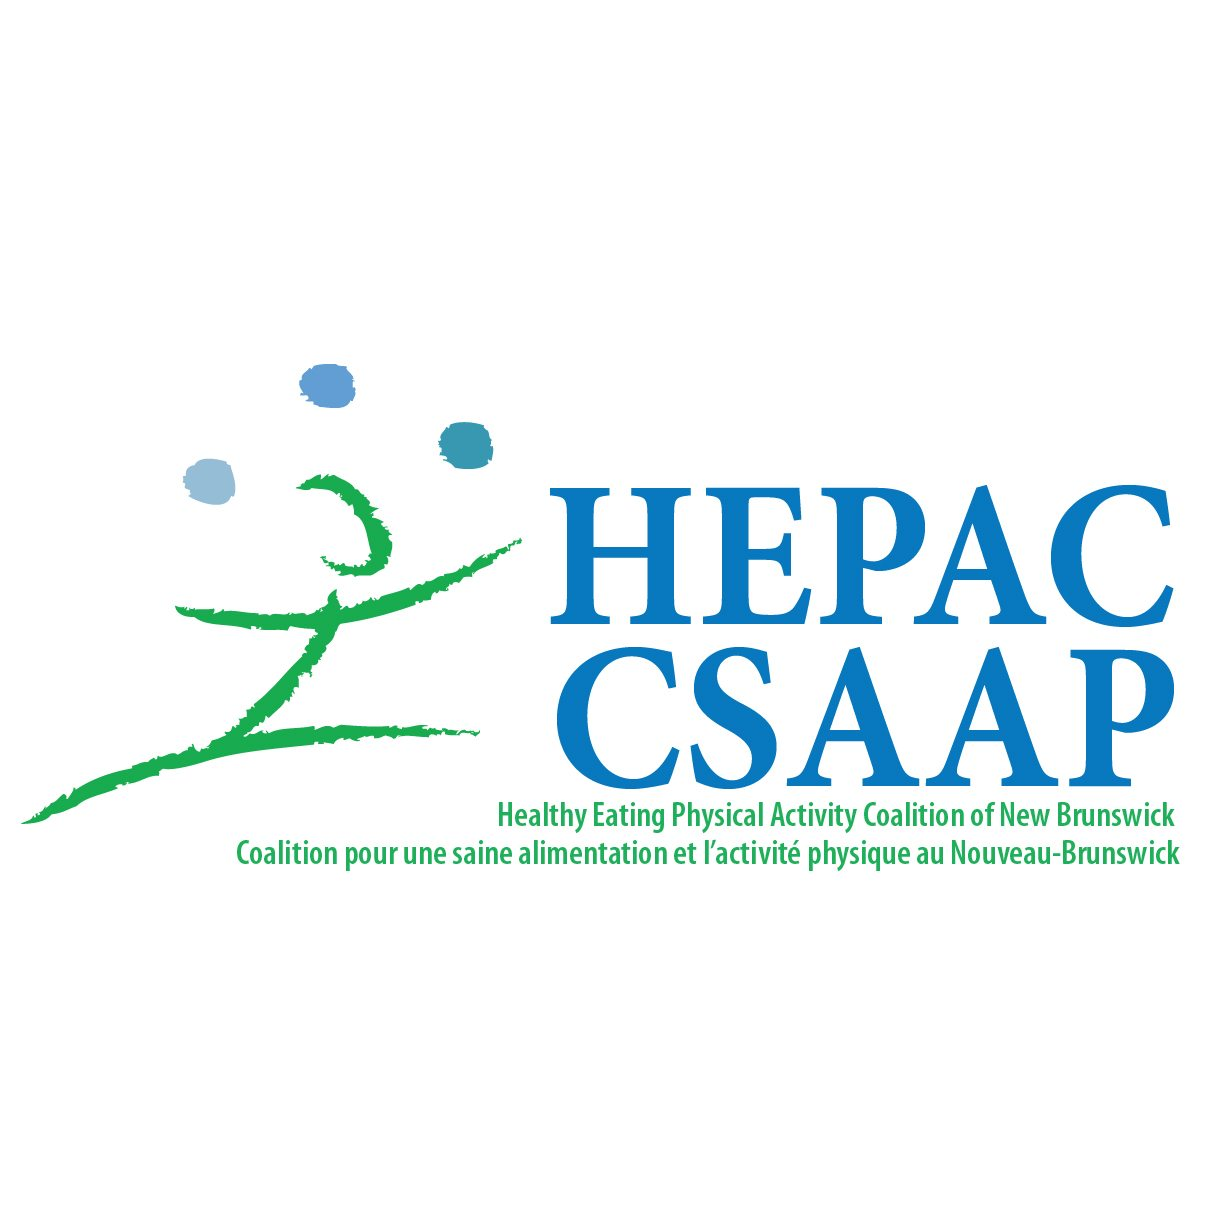 Healthy Eating and Physical Activity Coalition